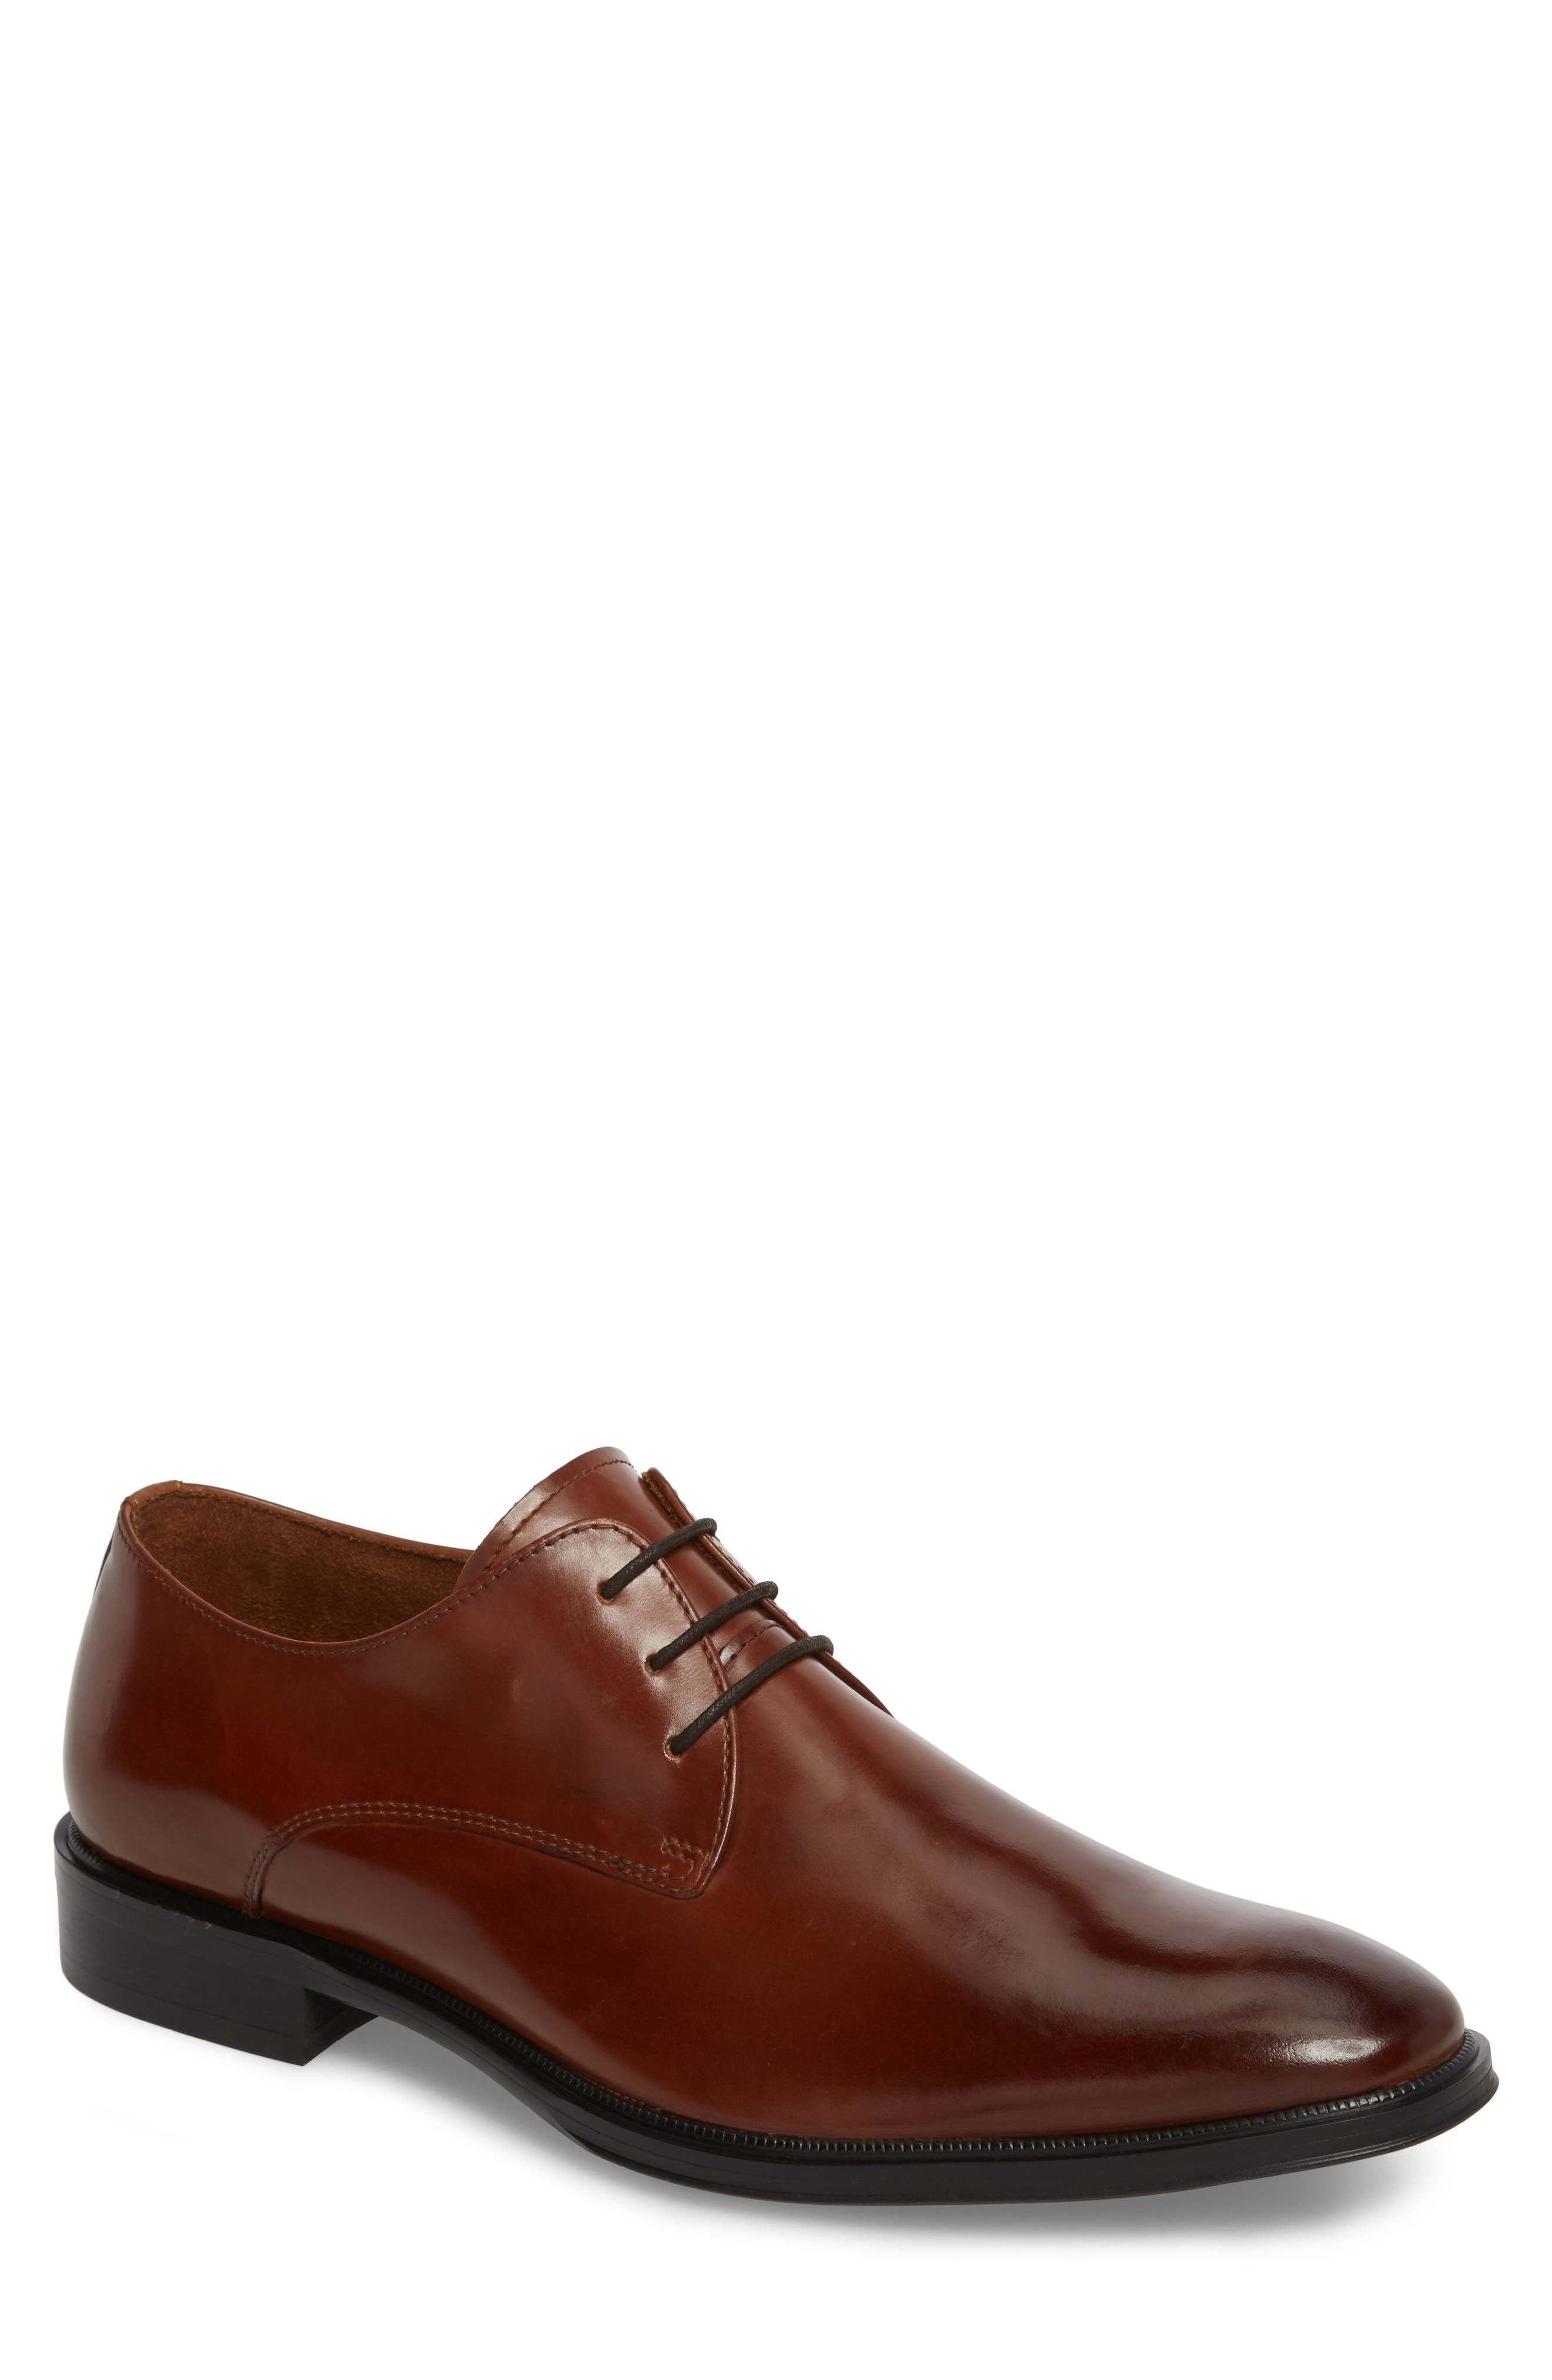 Kenneth Cole Tully Plain Toe Derby,                             Main thumbnail 1, color,                             COGNAC LEATHER